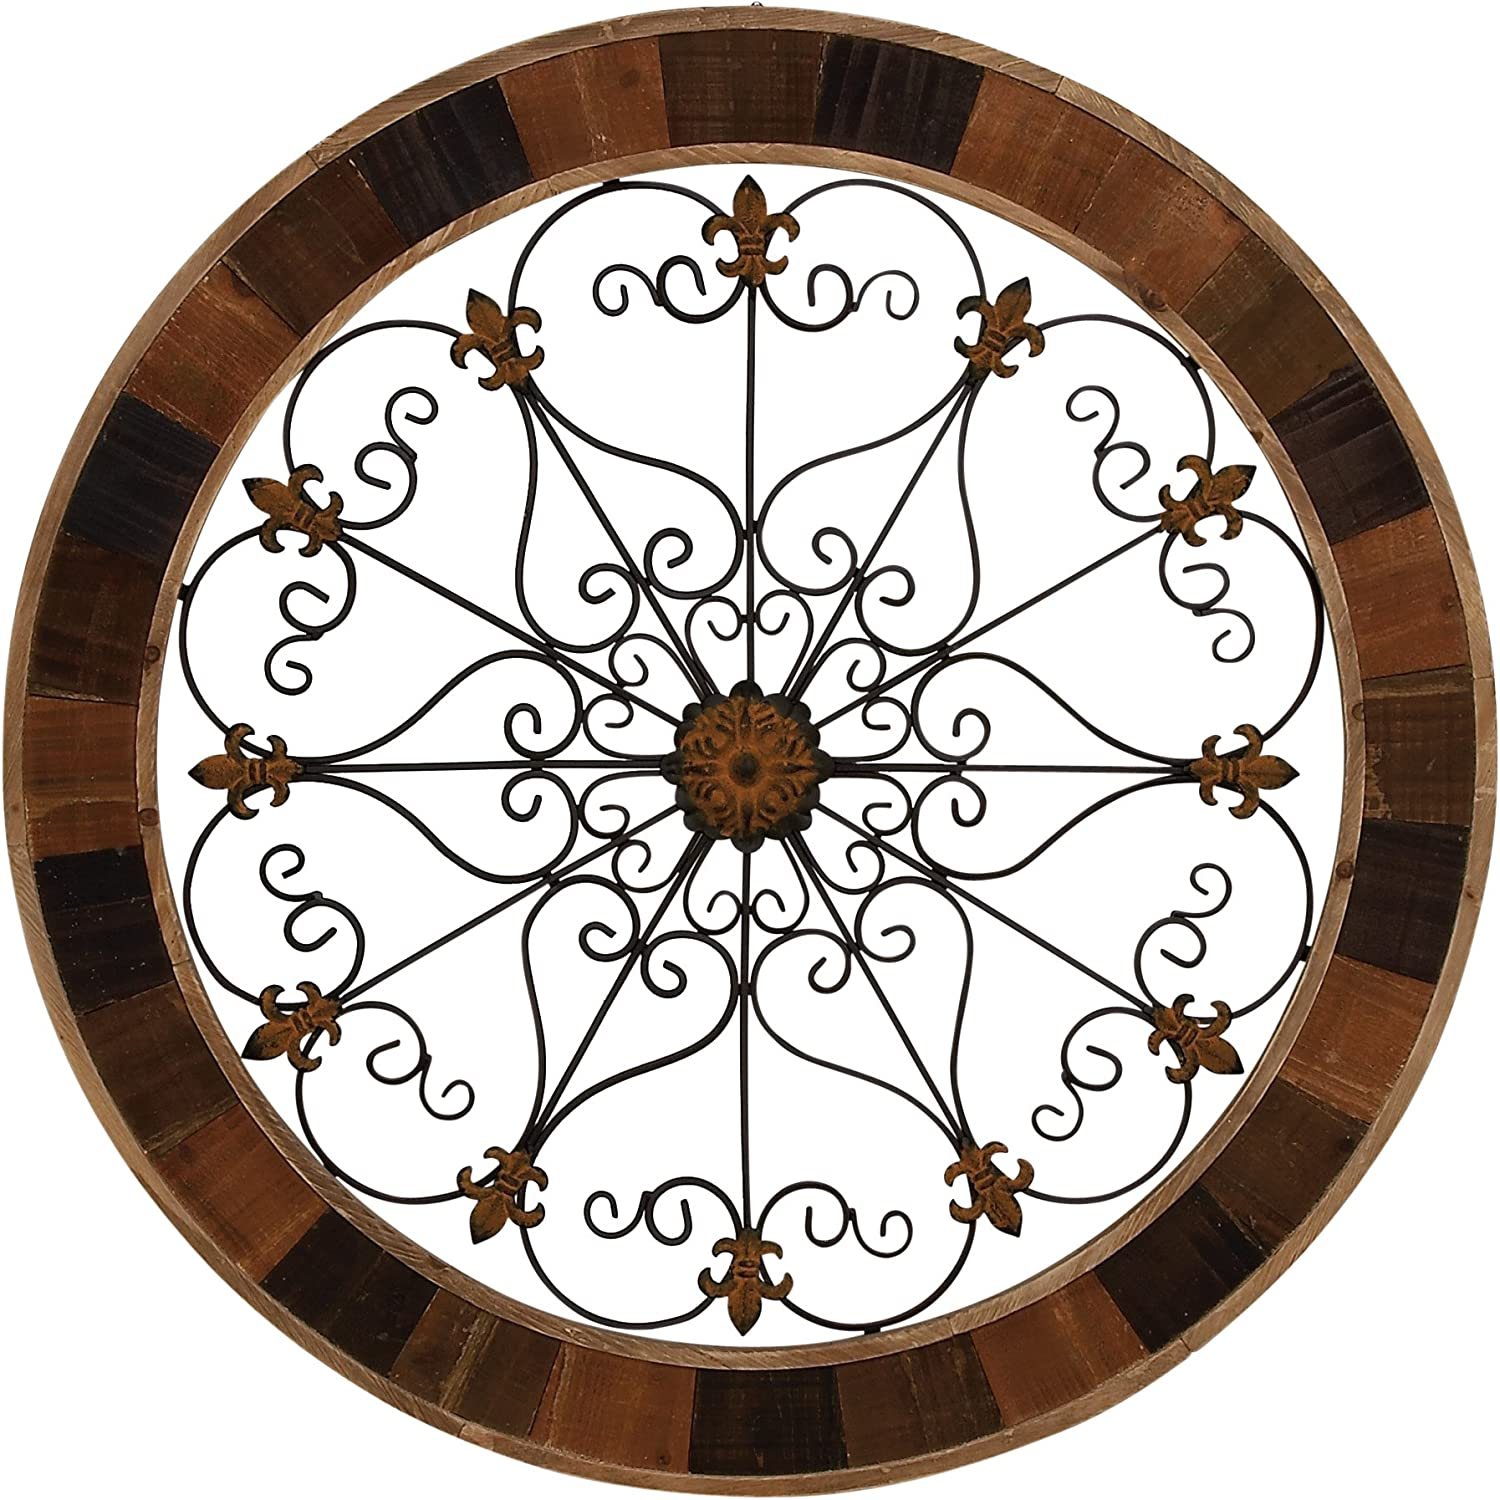 Benzara Antique Colonial Enticing Metal Wood Wall Decor, Brown, Black